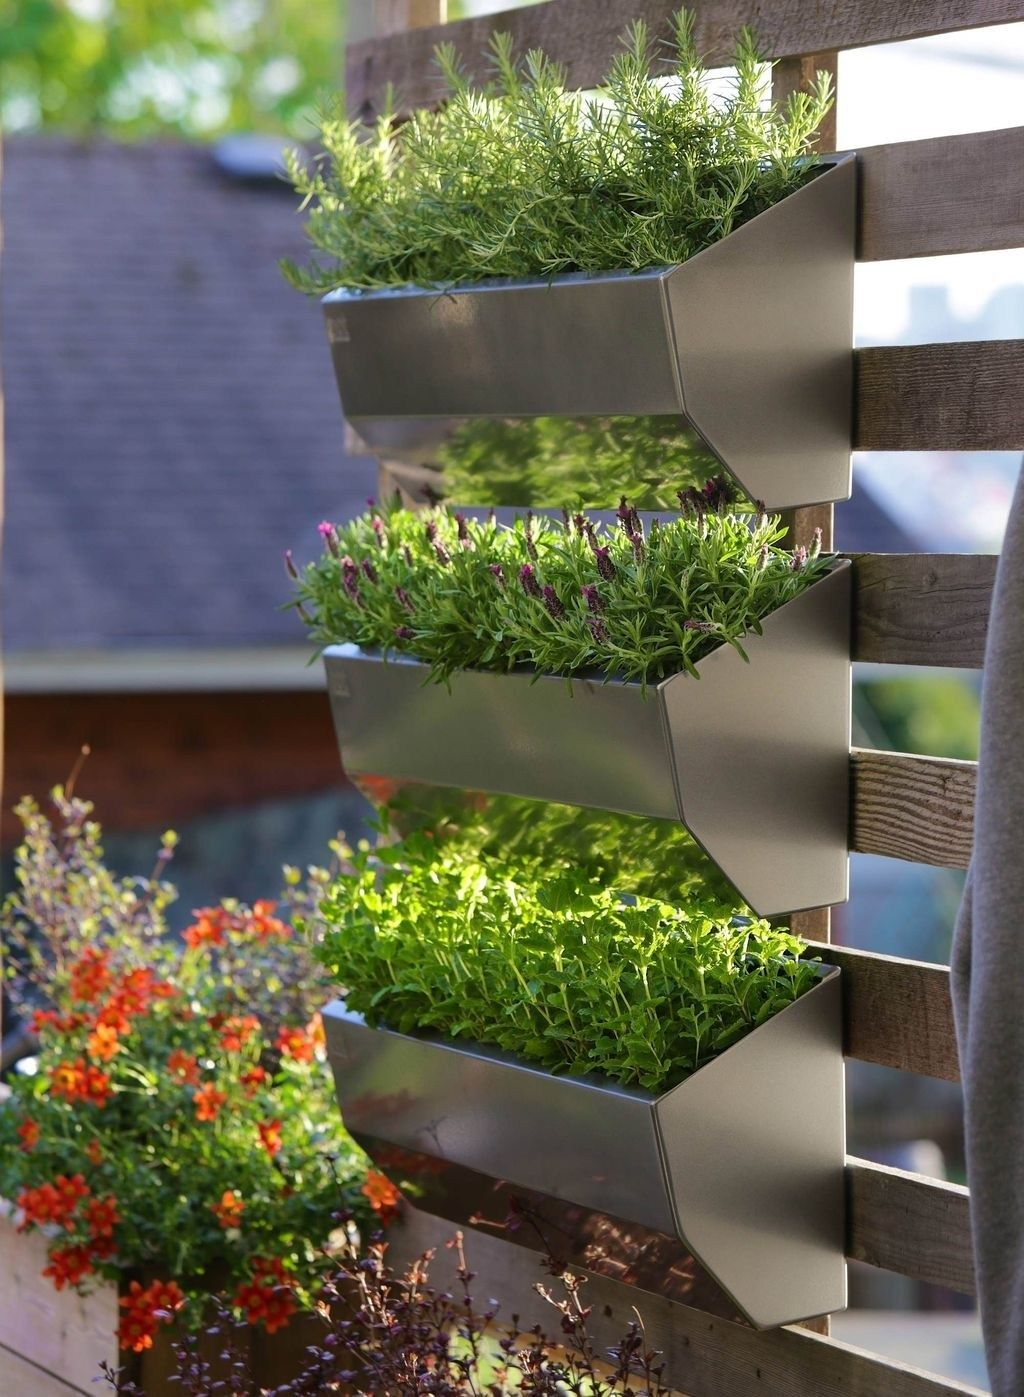 Why Should You Have A Creative Design For Your Diy Vertical Garden Ideas Vertical Vegetable Gardens Vertical Garden Diy Vertical Vegetable Garden